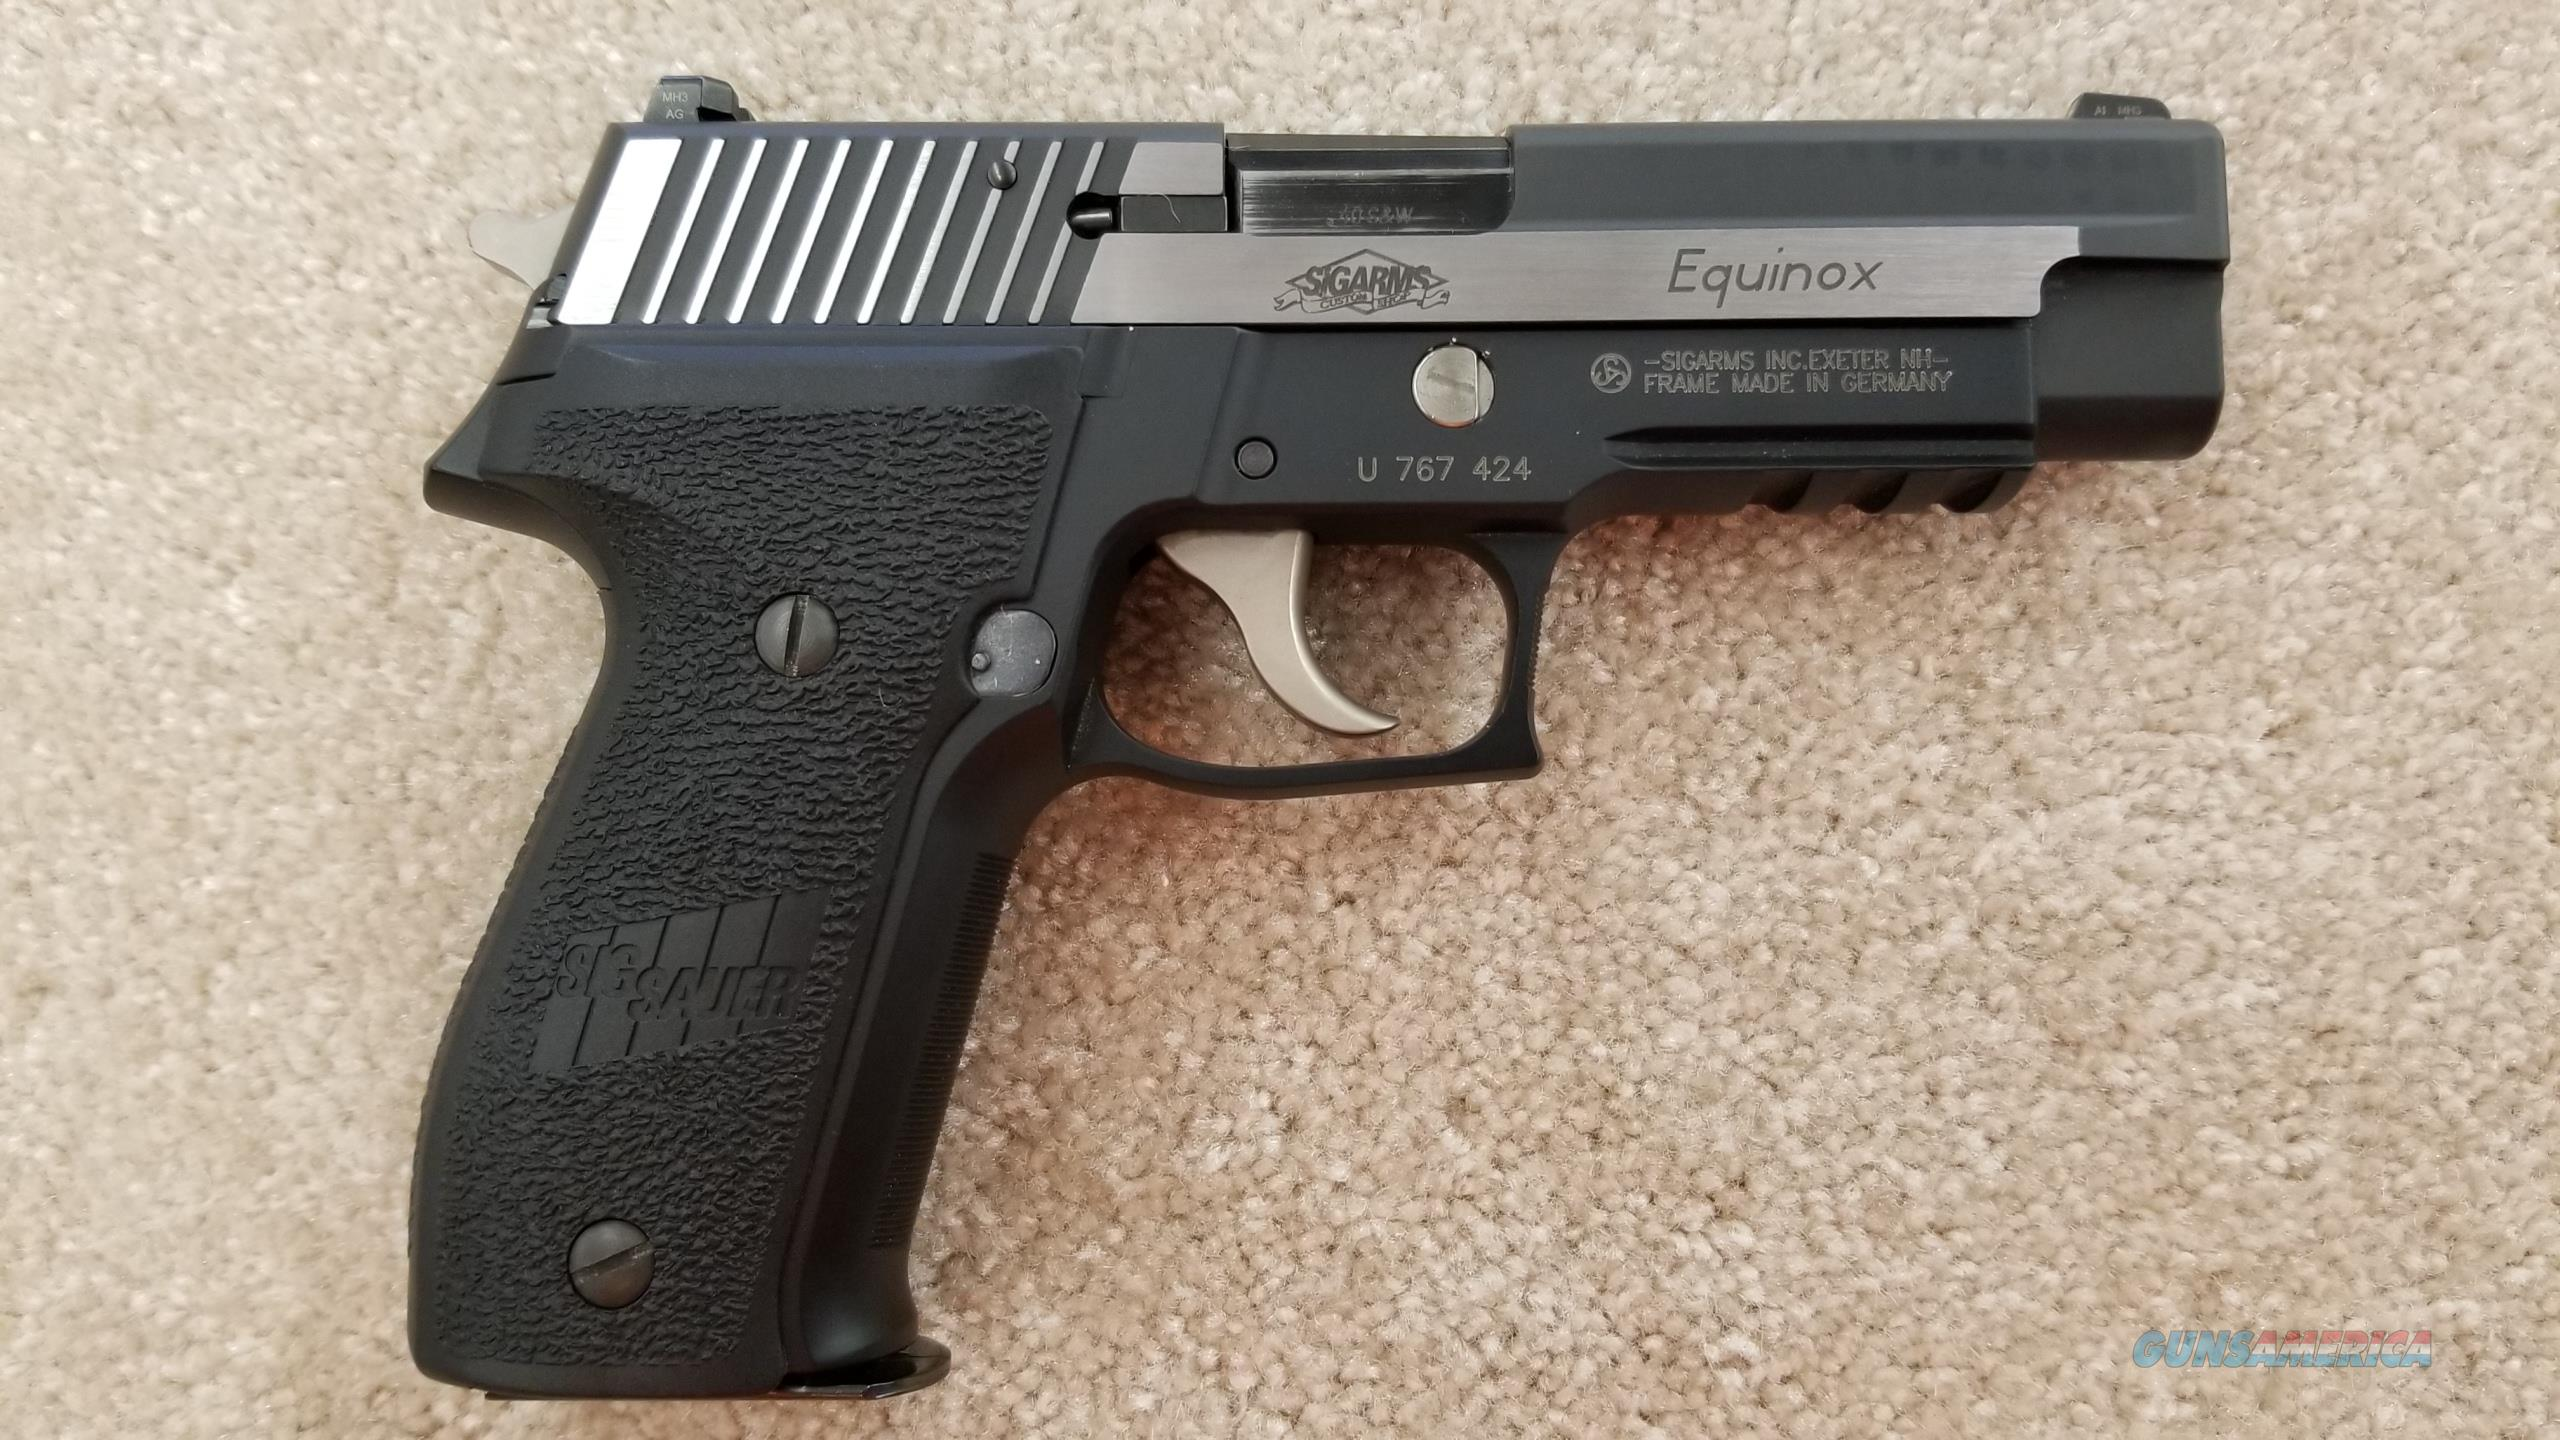 Pre Owned Sig Sauer P226 Equinox .40 S&W  Guns > Pistols > Sig - Sauer/Sigarms Pistols > P226